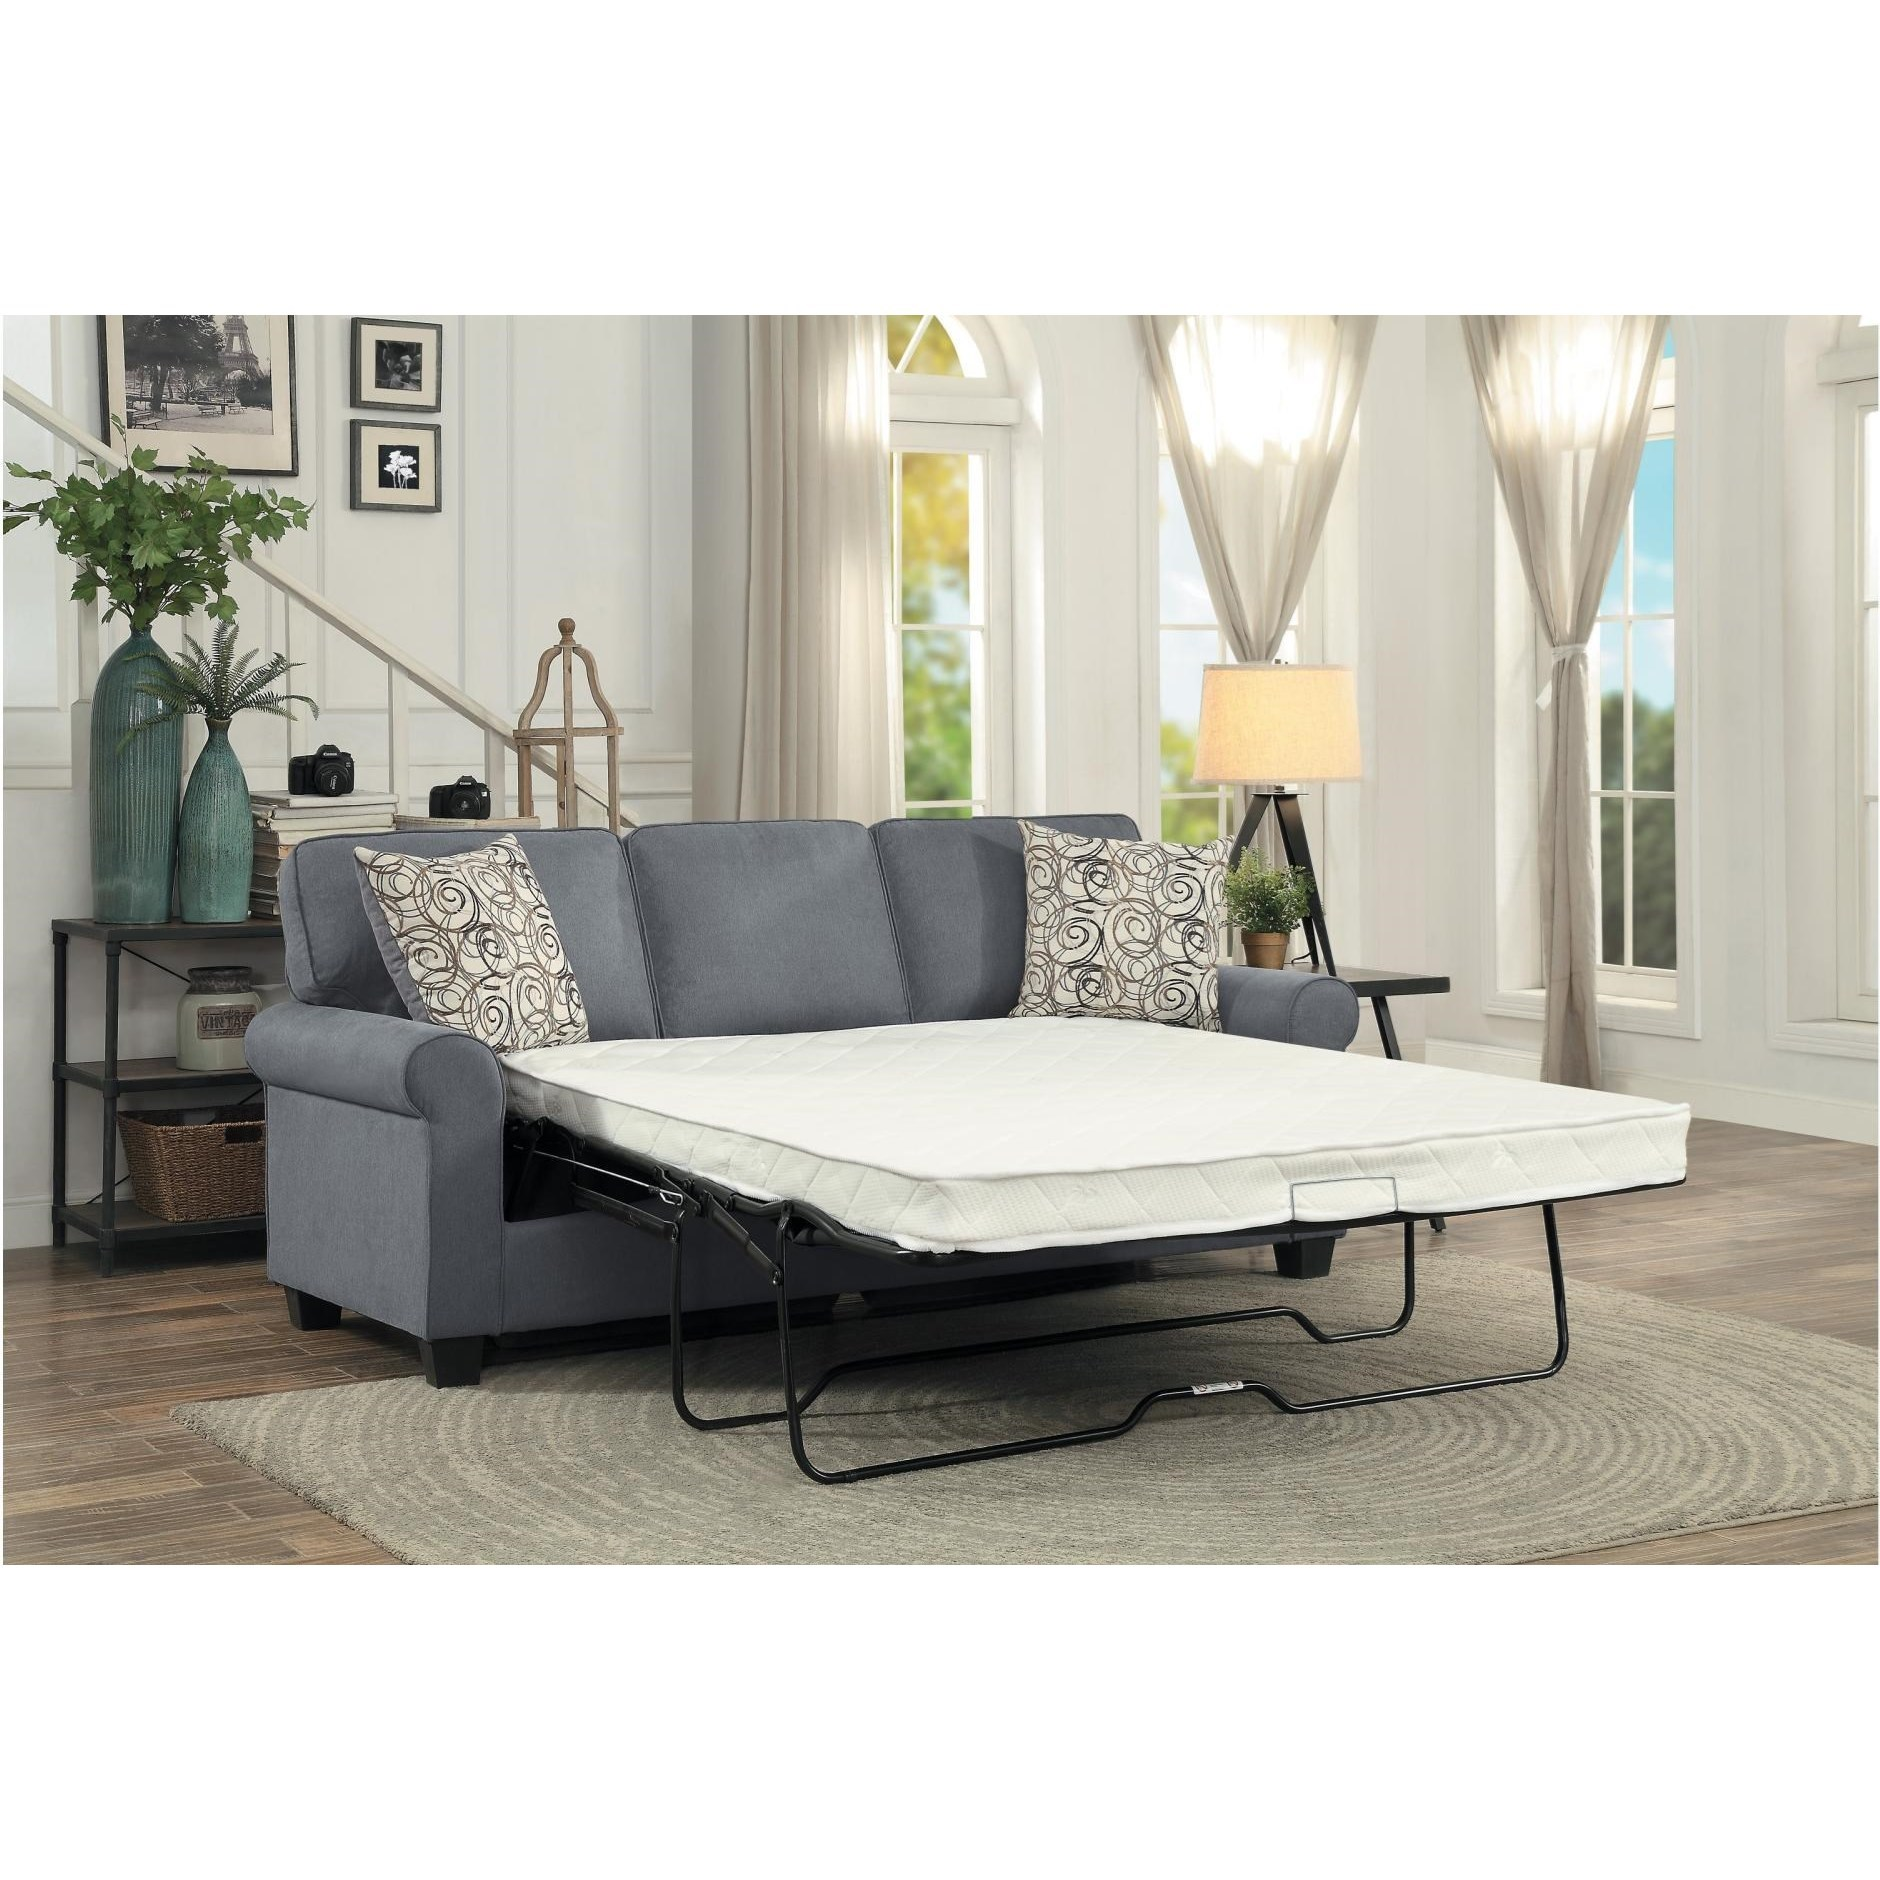 Homelegance Selkirk Transitional Sofa Sleeper With